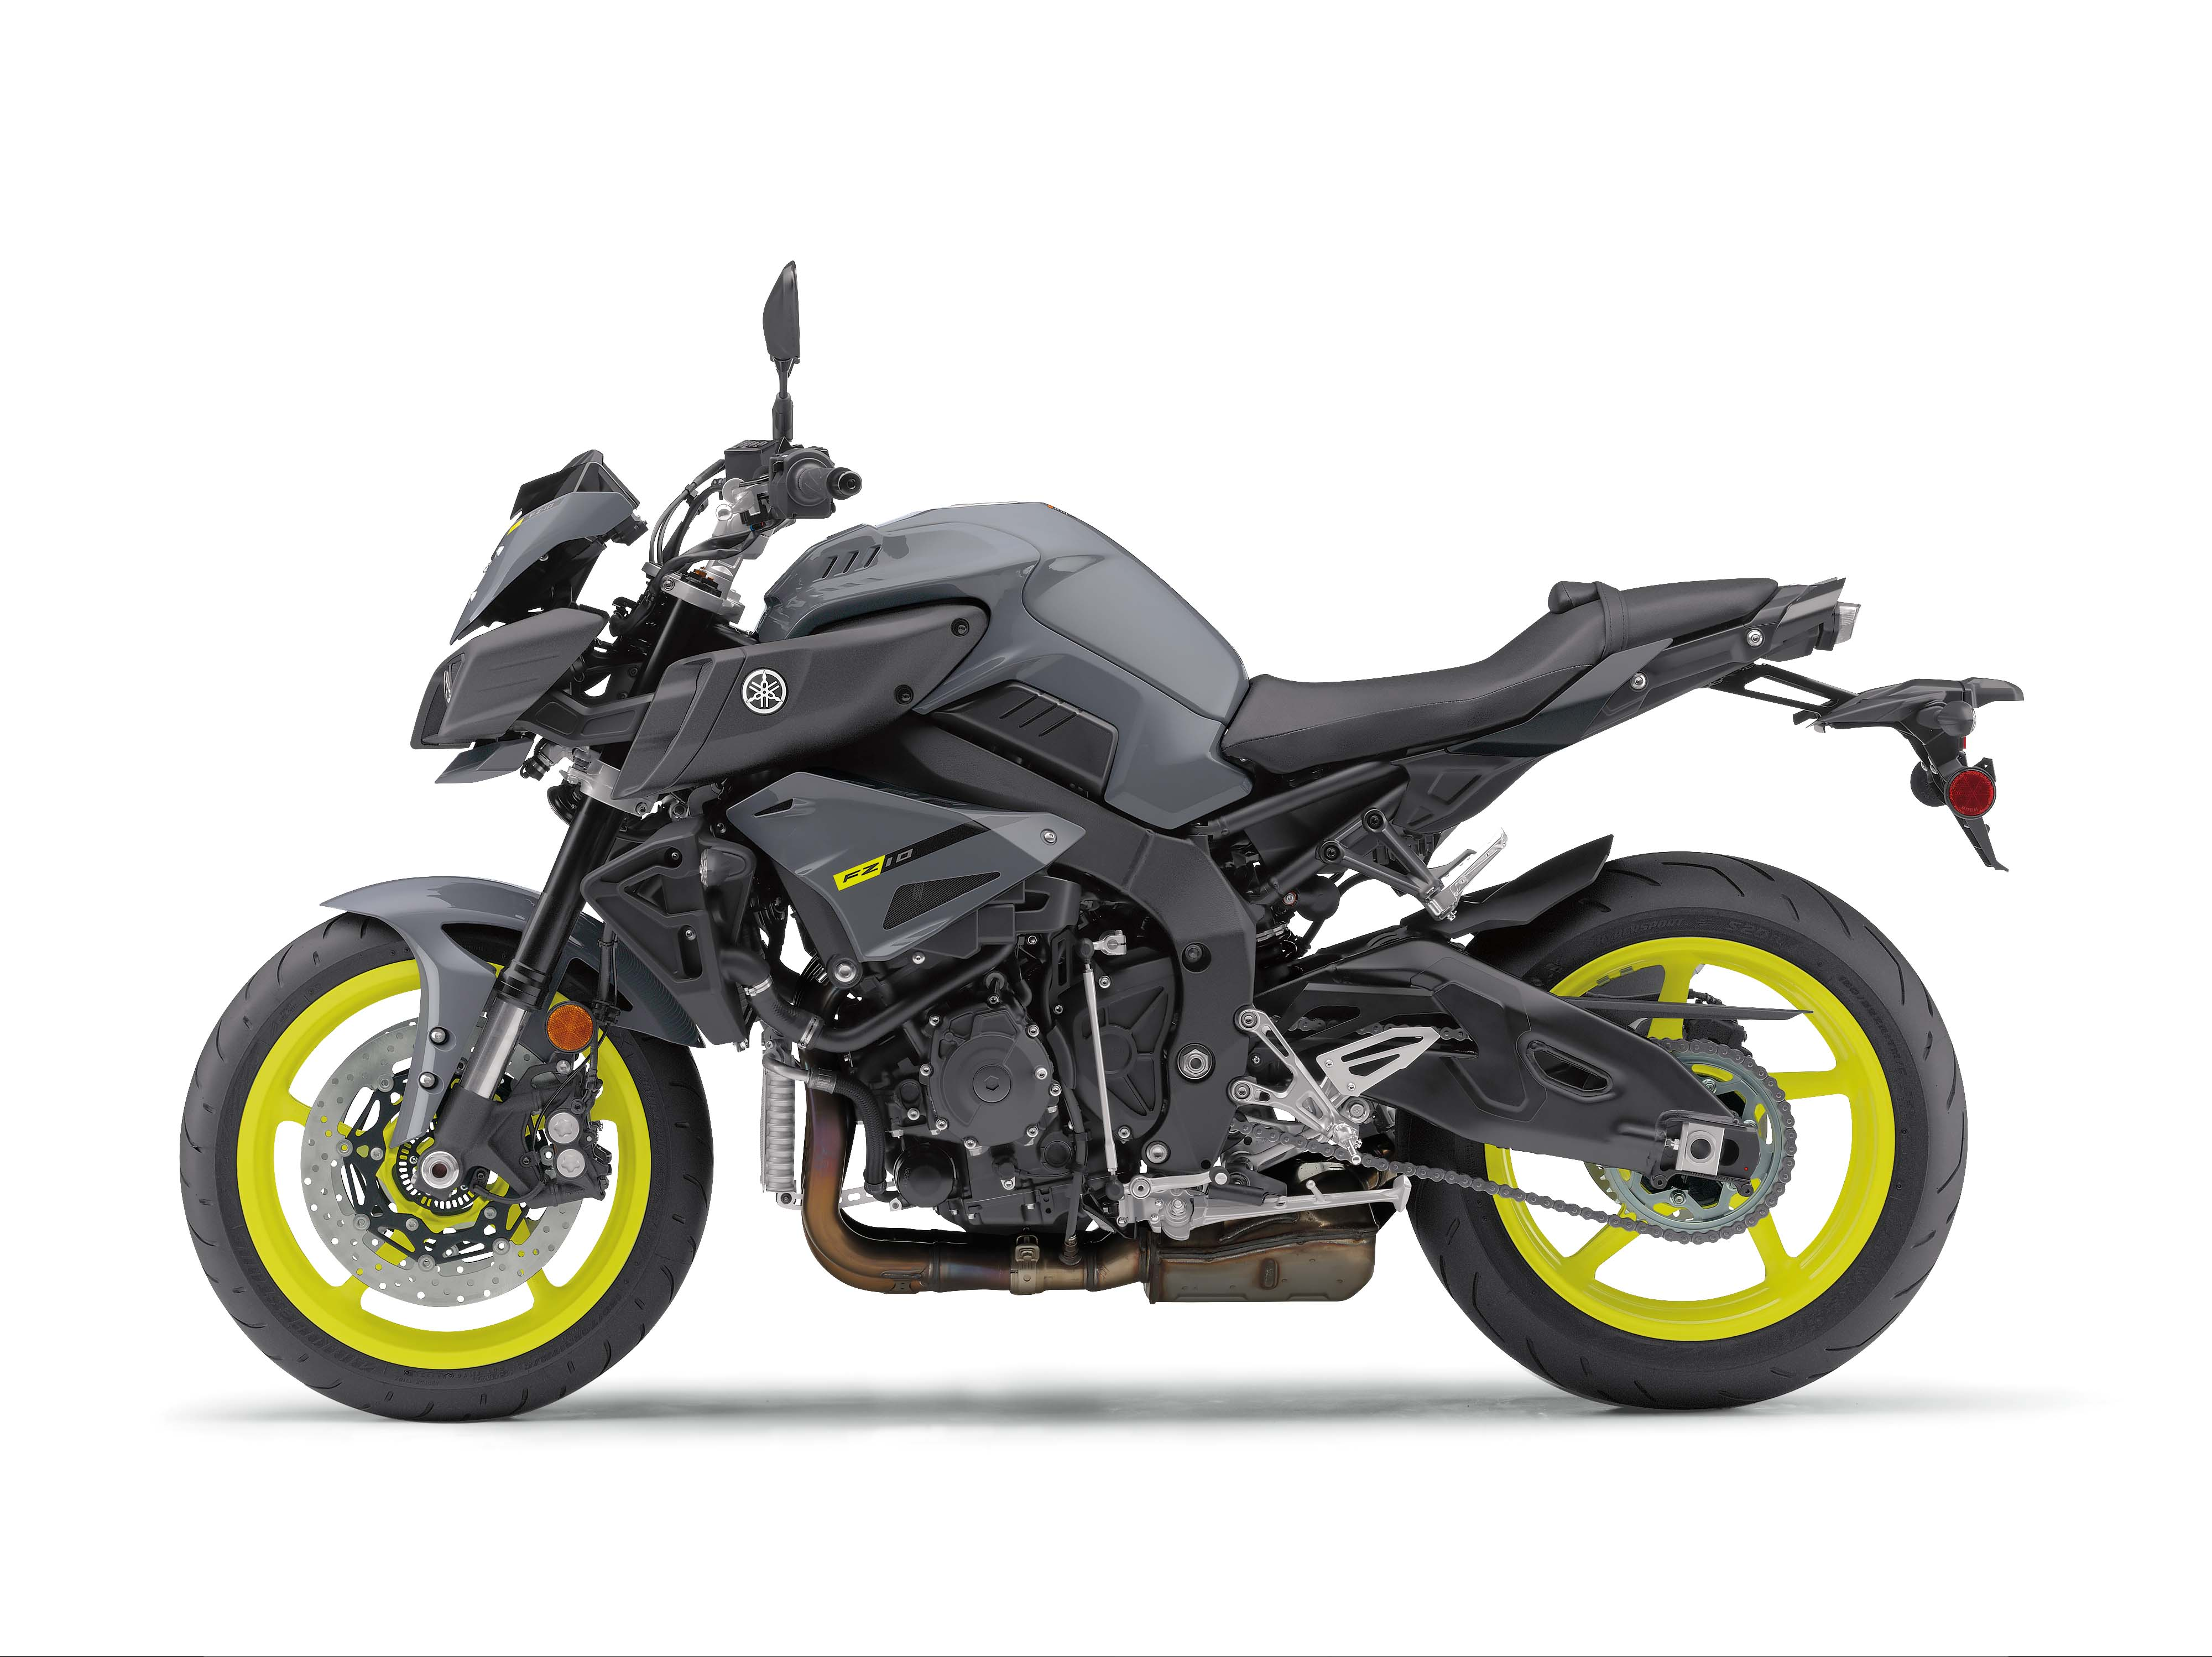 Is Yamaha Coming Out With A New Touring Bike